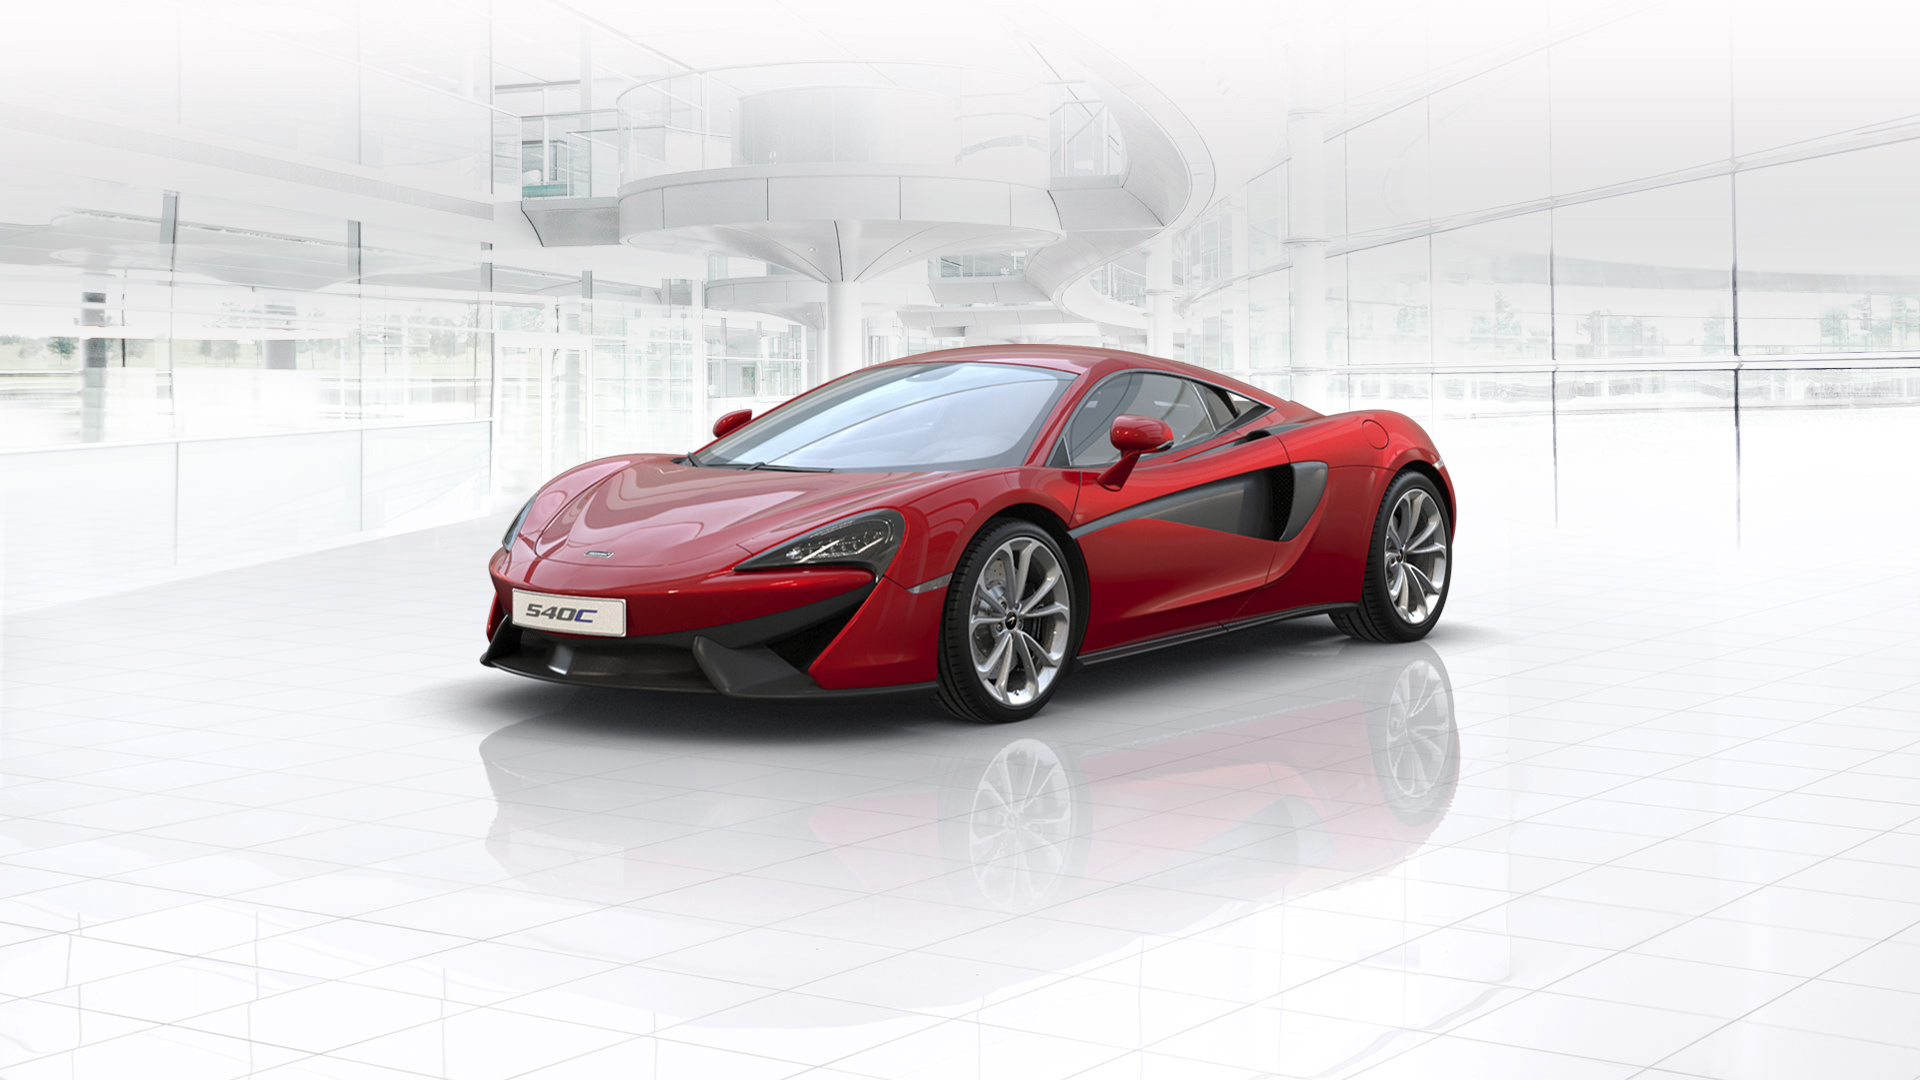 The 540c Pushes Boundaries By Delivering Mclaren Dna In Sports Cars